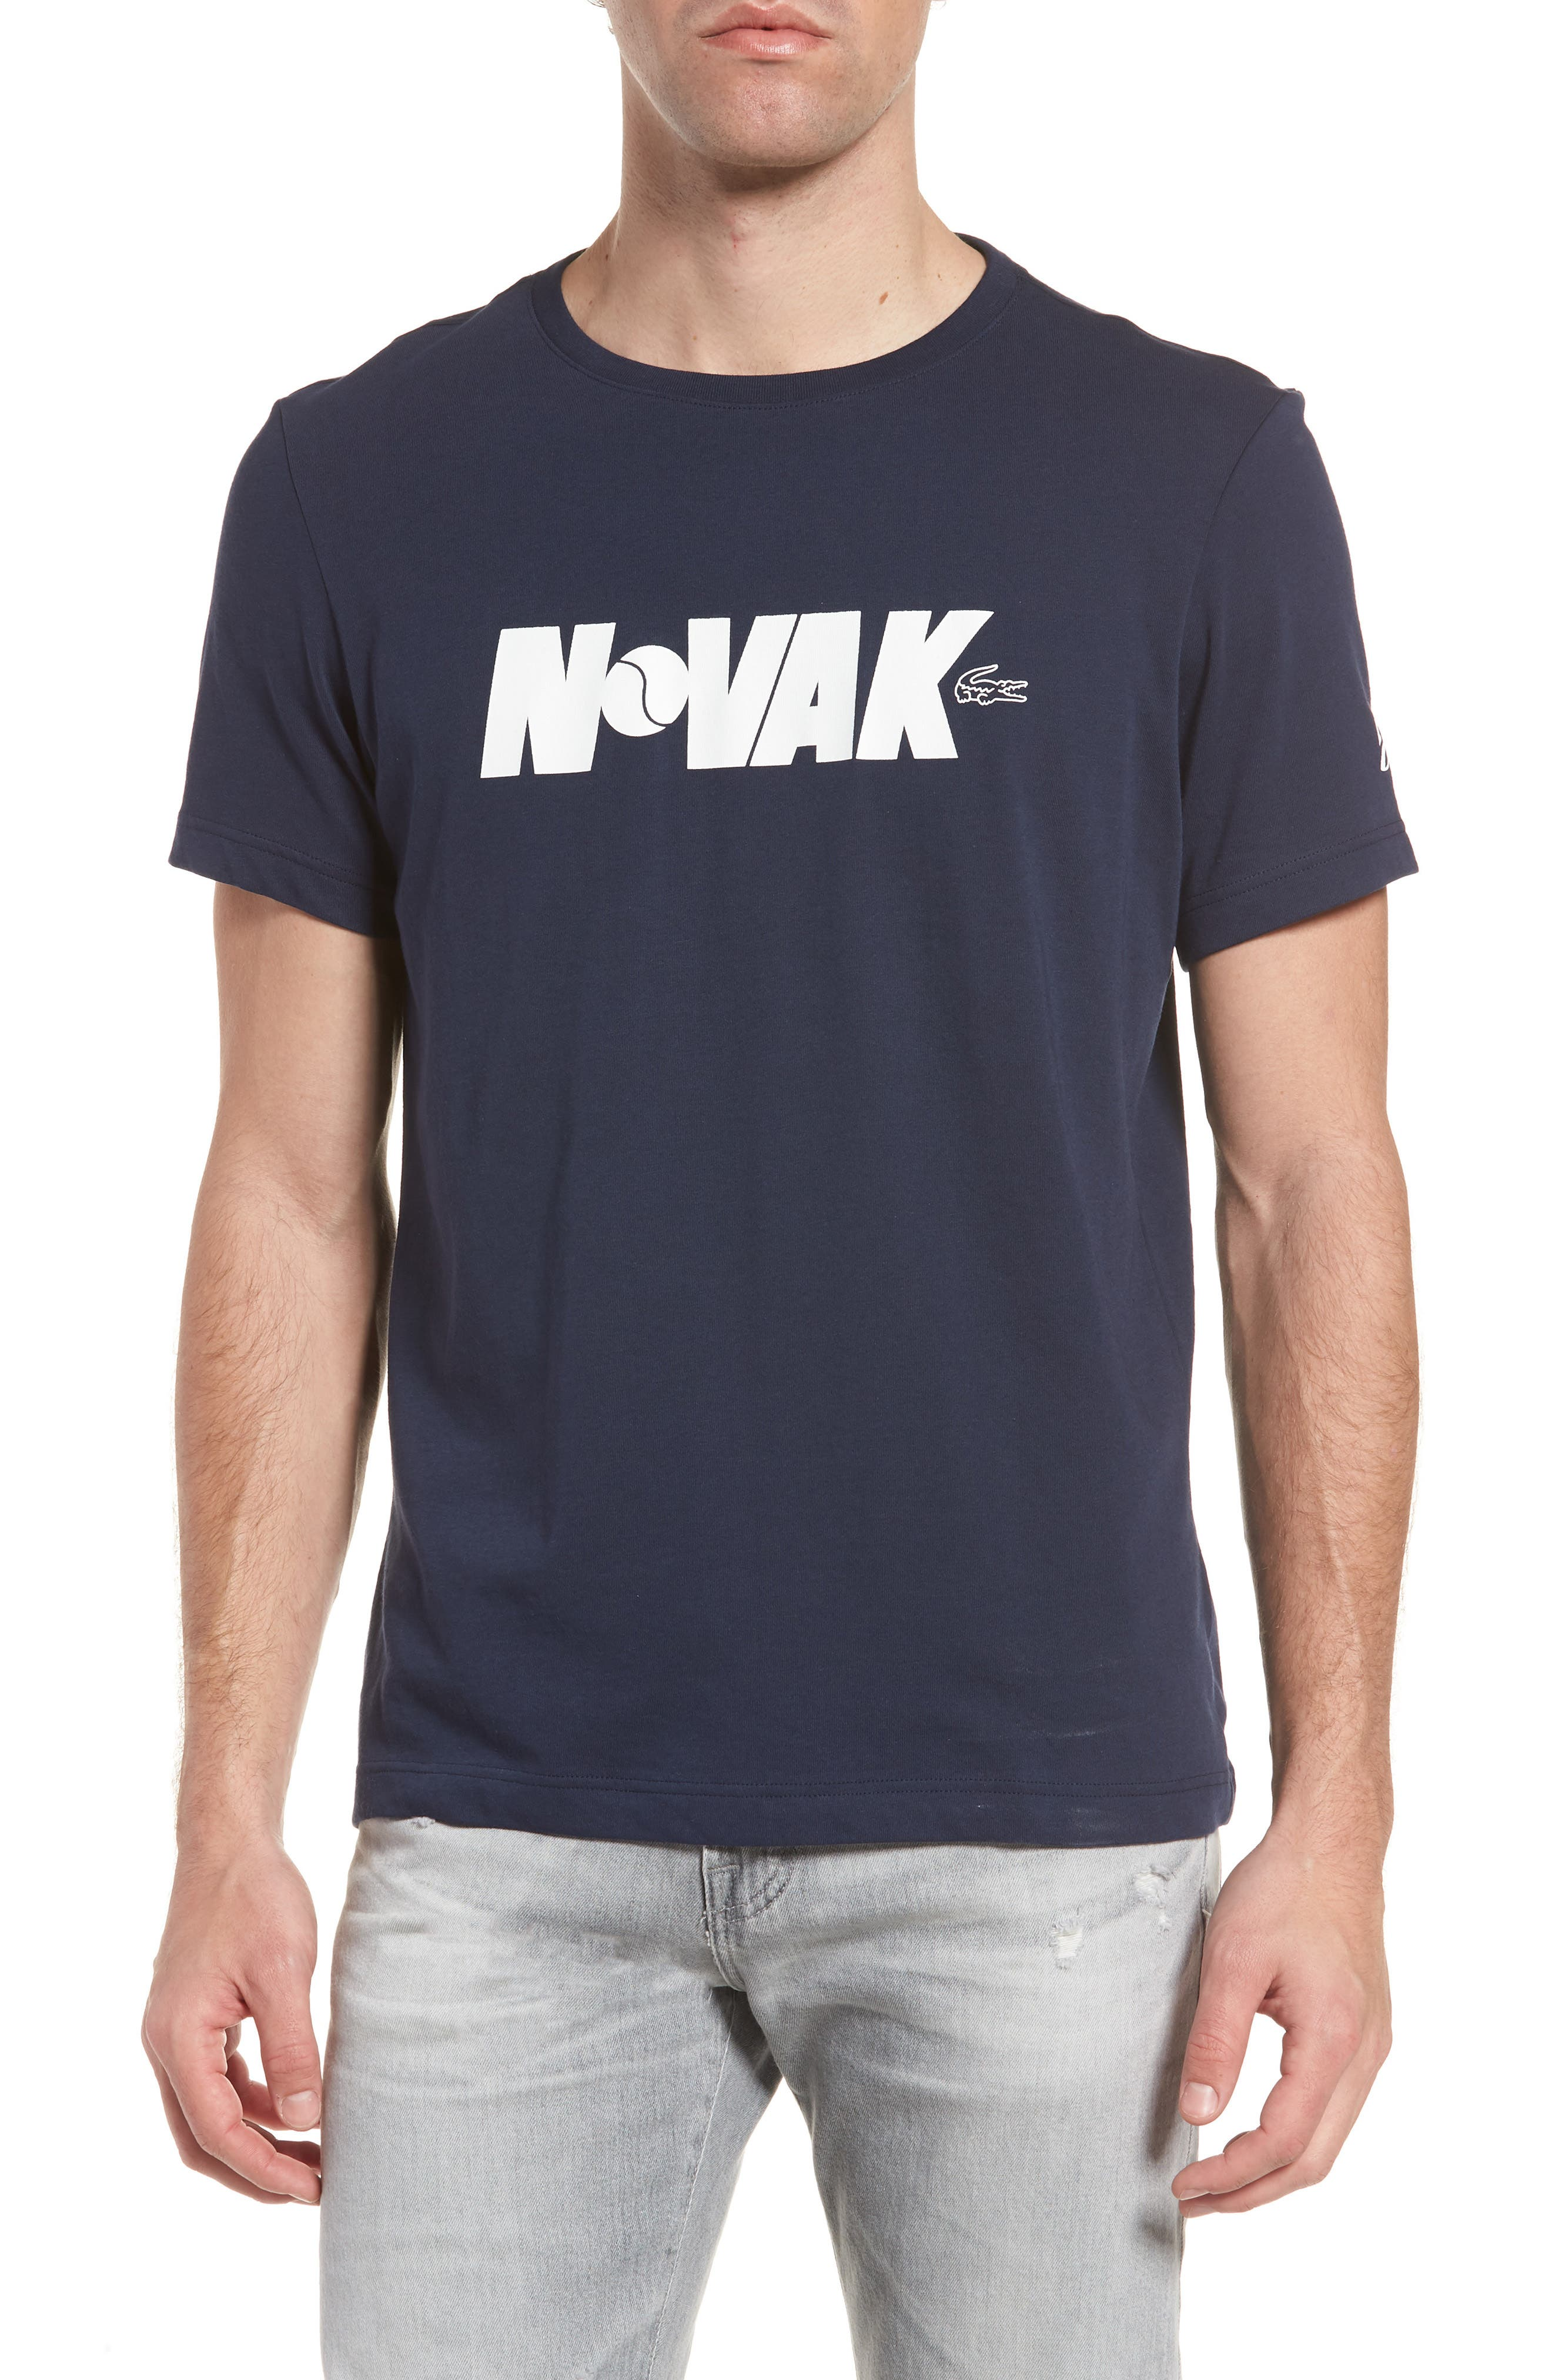 Sport Novak Djokovic Crewneck Tech Jersey T-Shirt,                             Main thumbnail 1, color,                             Navy Blue/ White